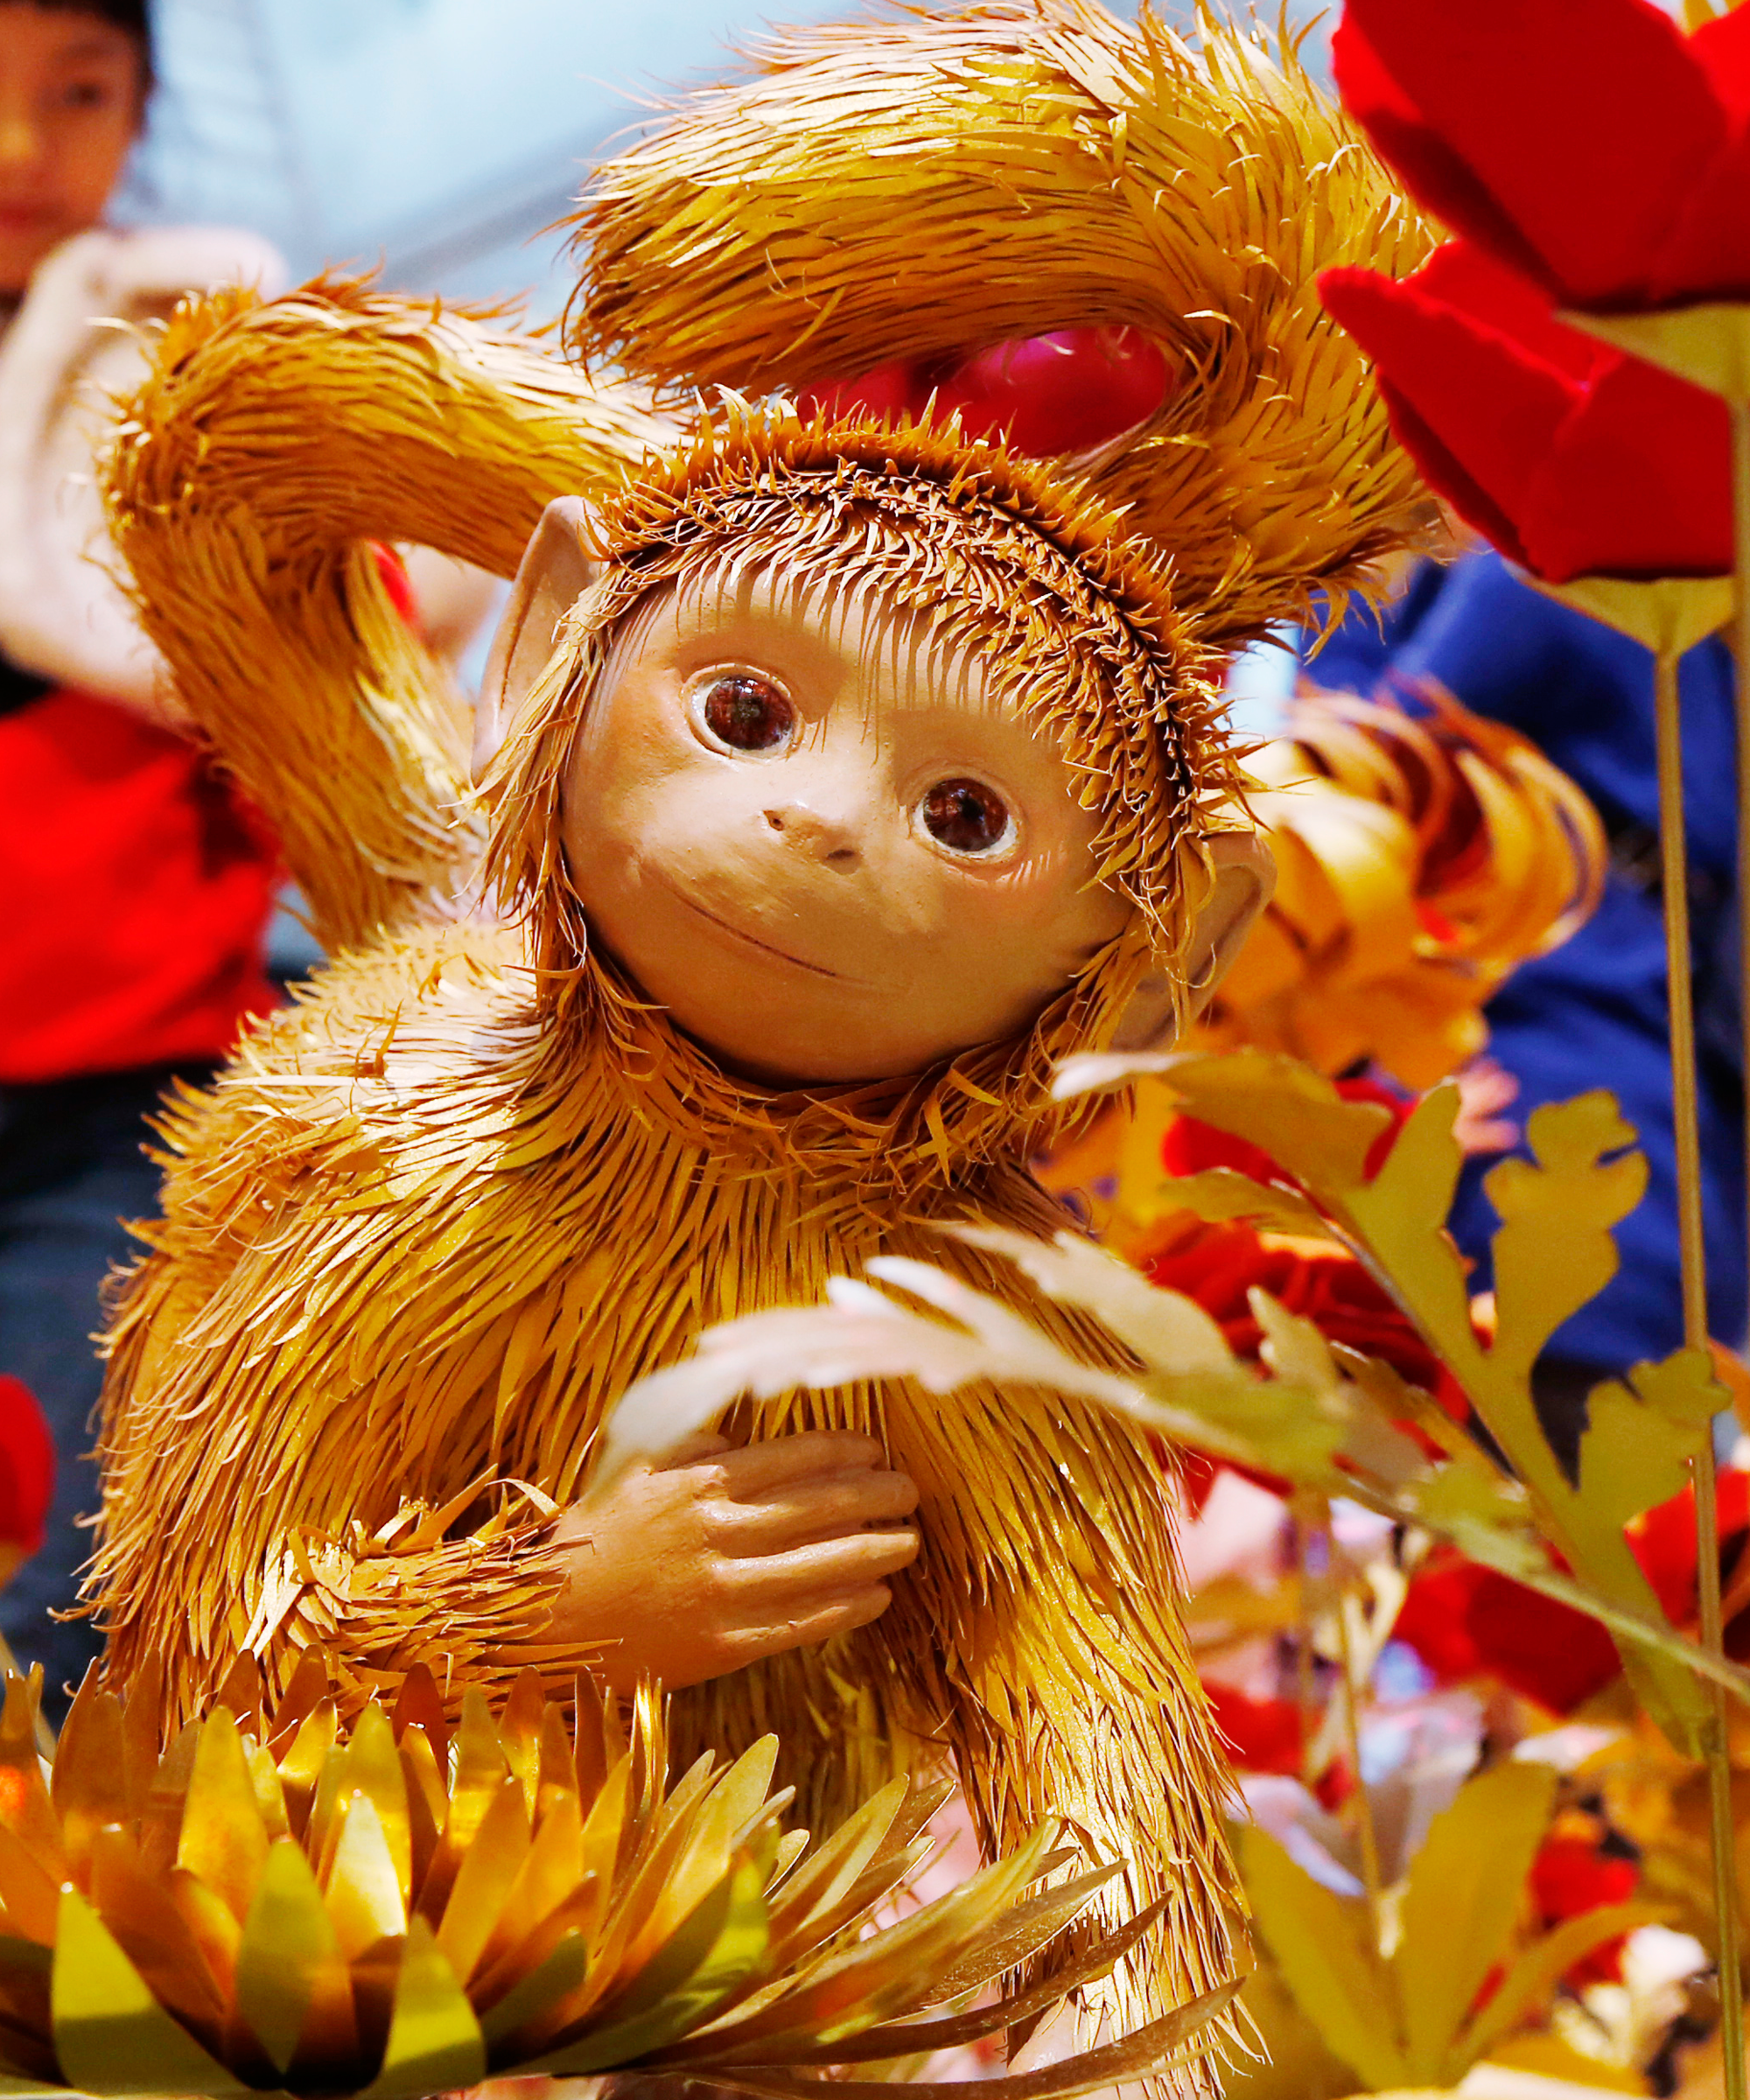 It's The Year Of The Monkey! Here's What You Need To Know